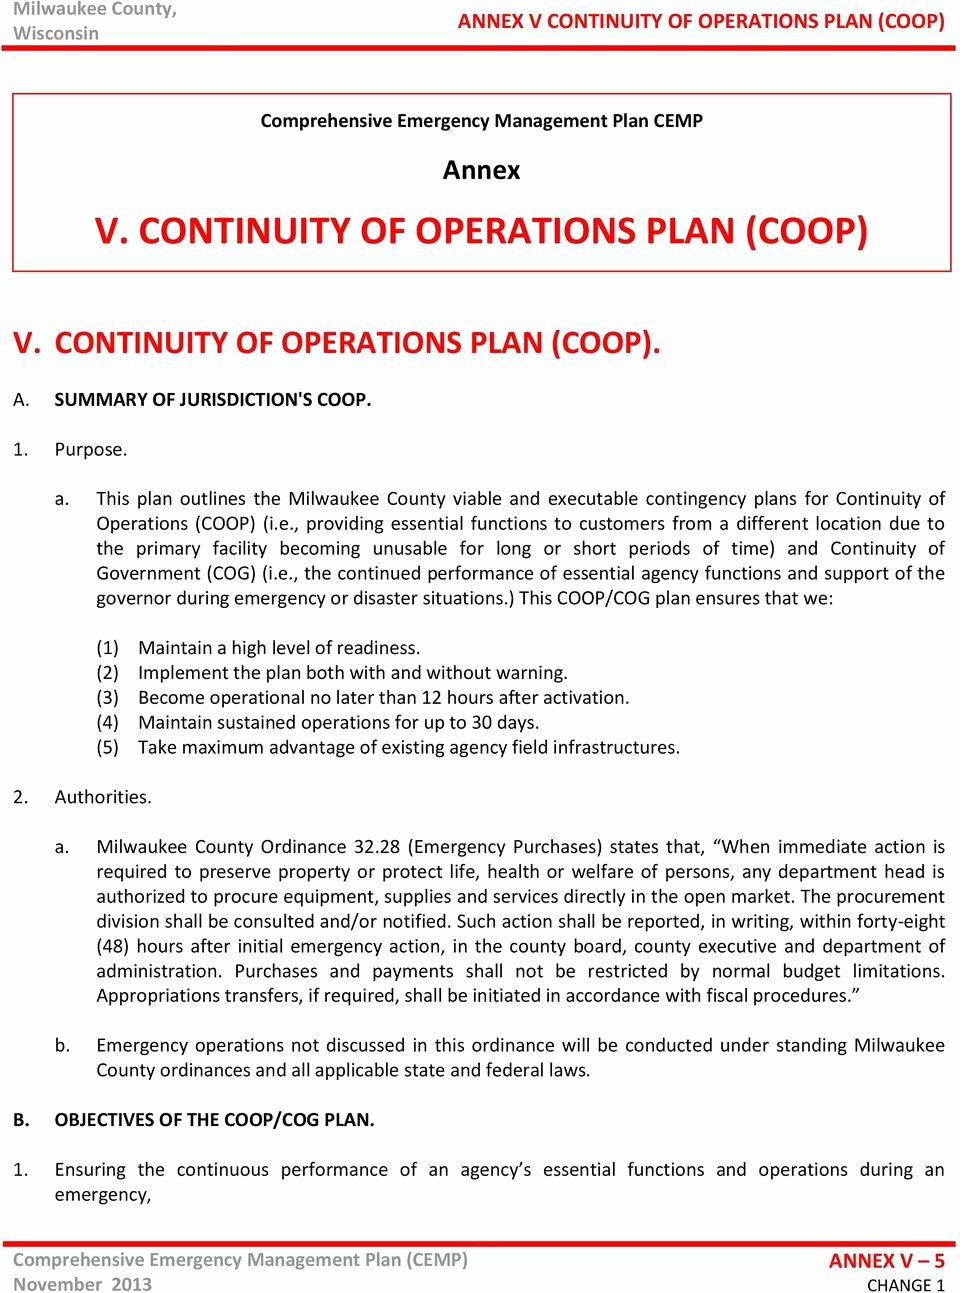 Continuity Of Operations Plan Template Beautiful Prehensive Emergency Management Plan Cemp Annex V